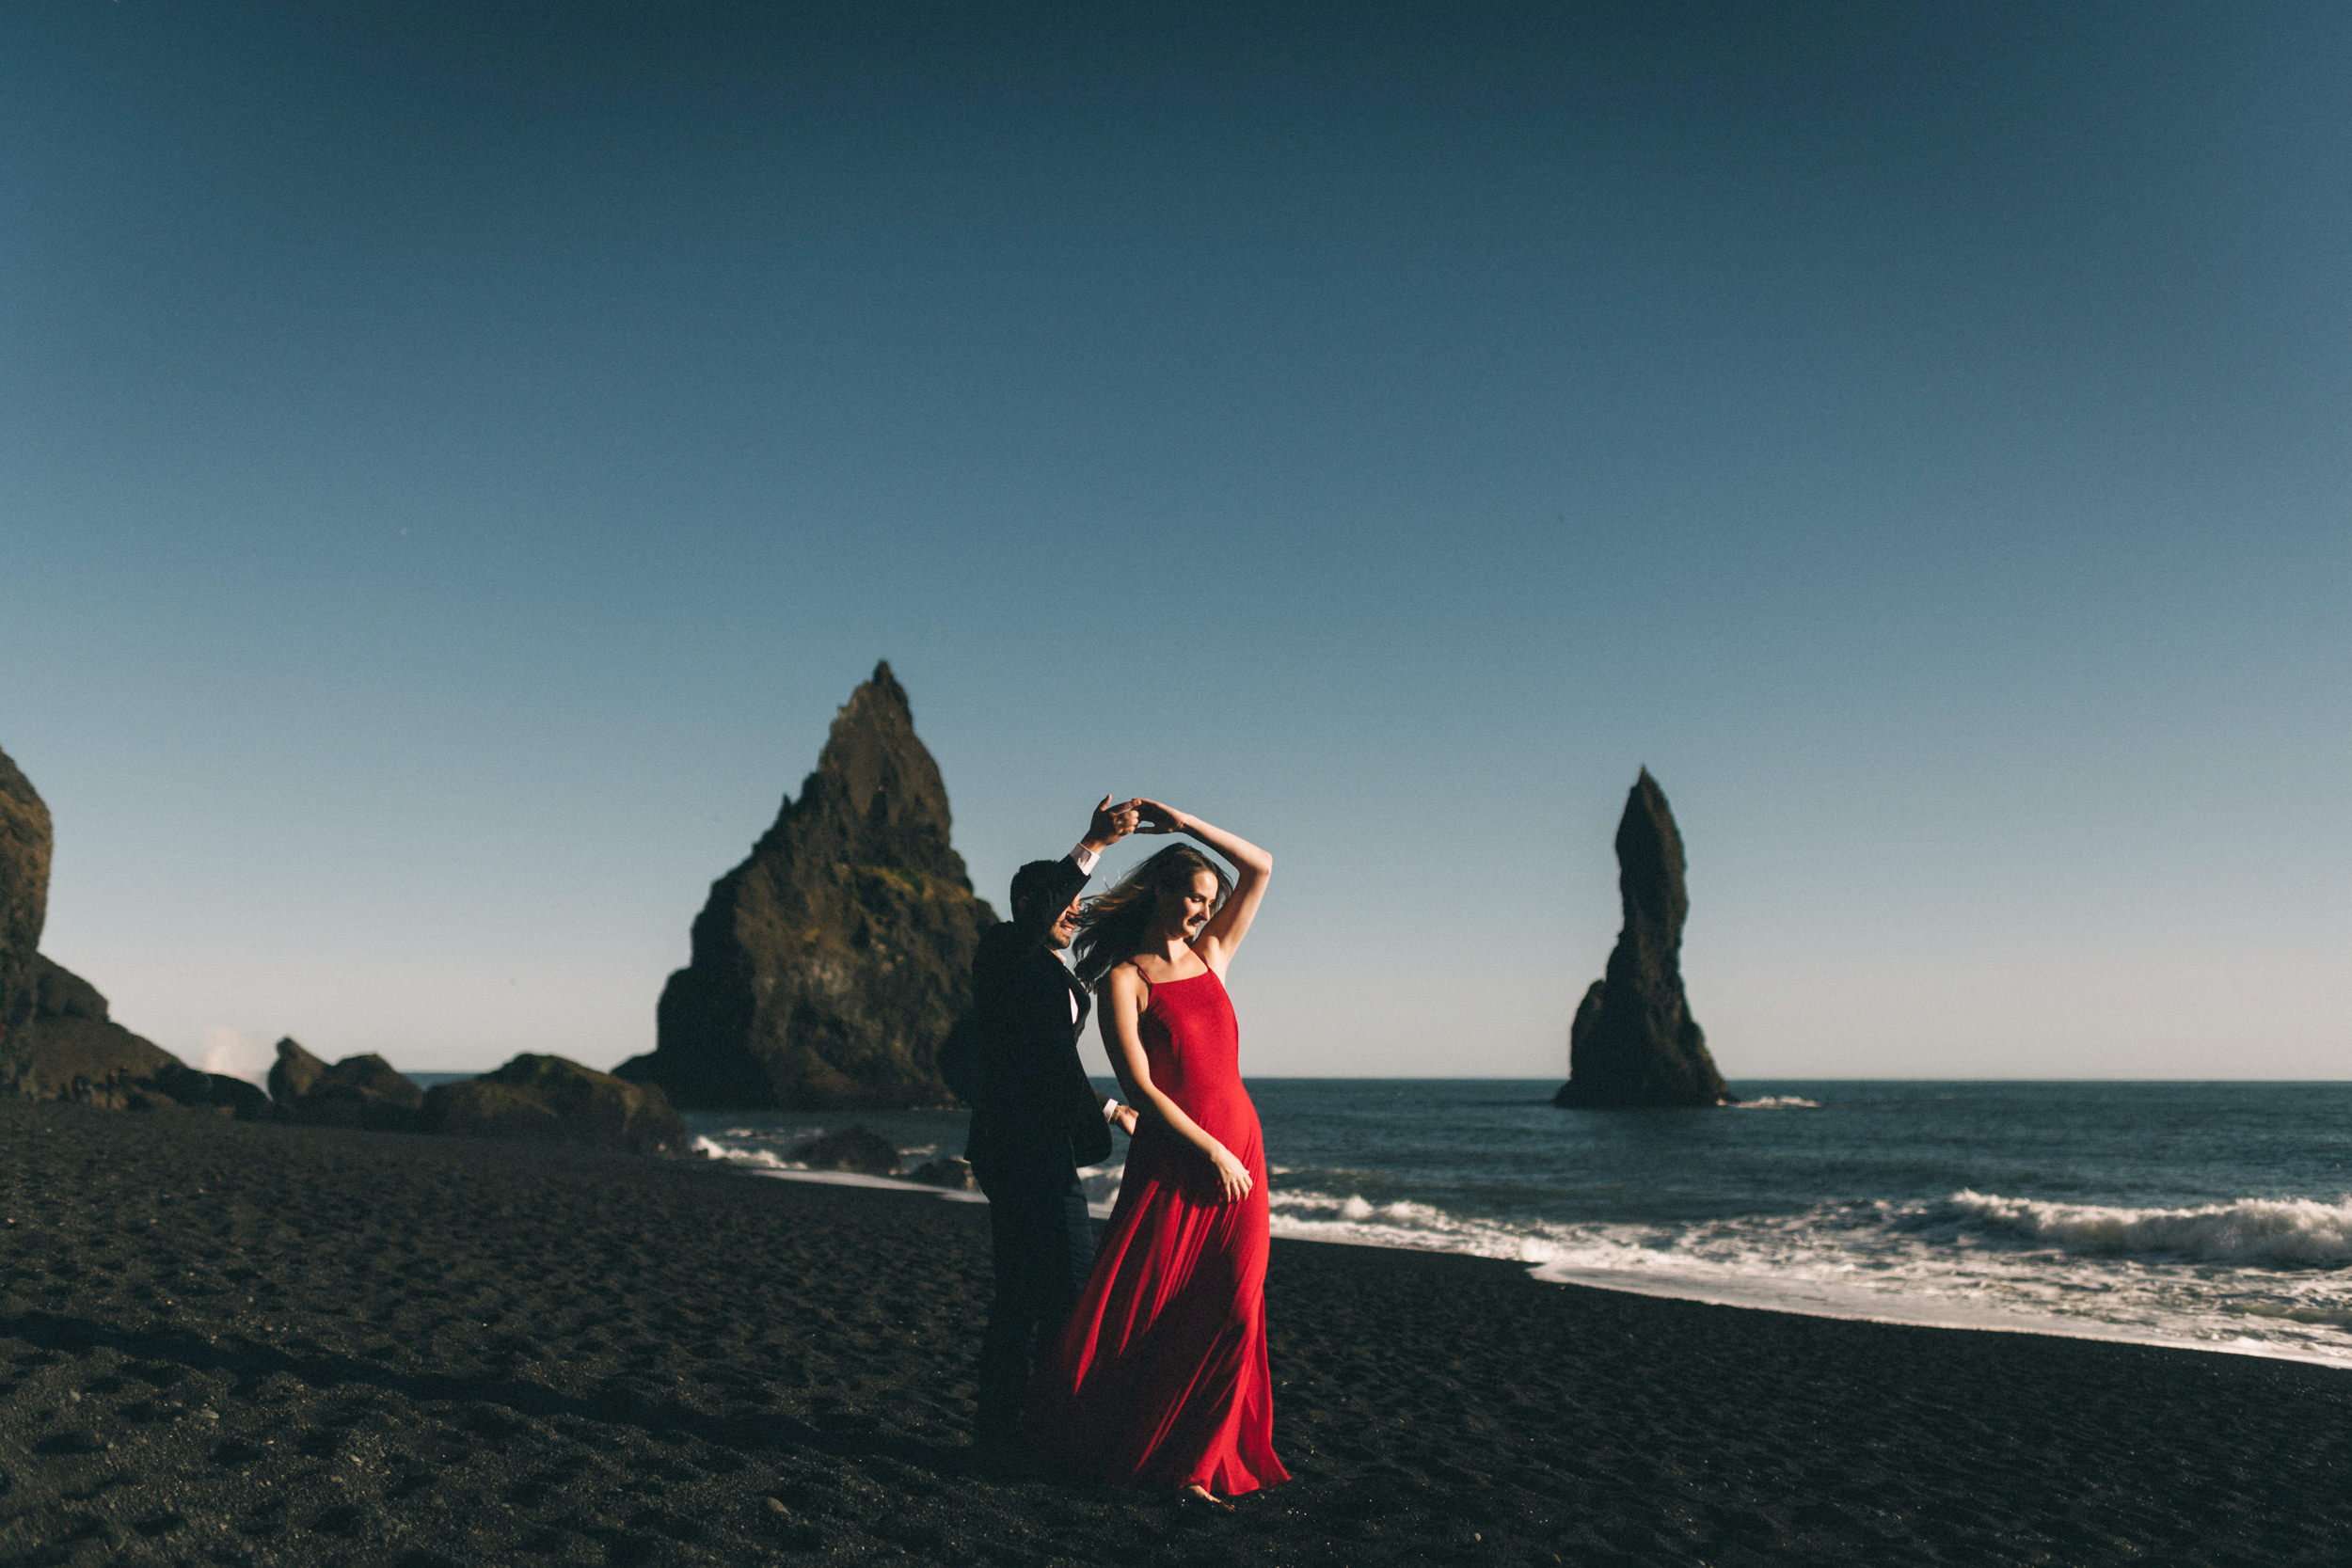 Sarah-Katherine-Davis-Photography-Iceland-Adventure-Elopement-Photographer-Louisville-Kentucky-Wedding-Photographer-Travel-Vik-Beach-Engagement-Session-Red-Dress-Reynisfjara-84edit.jpg